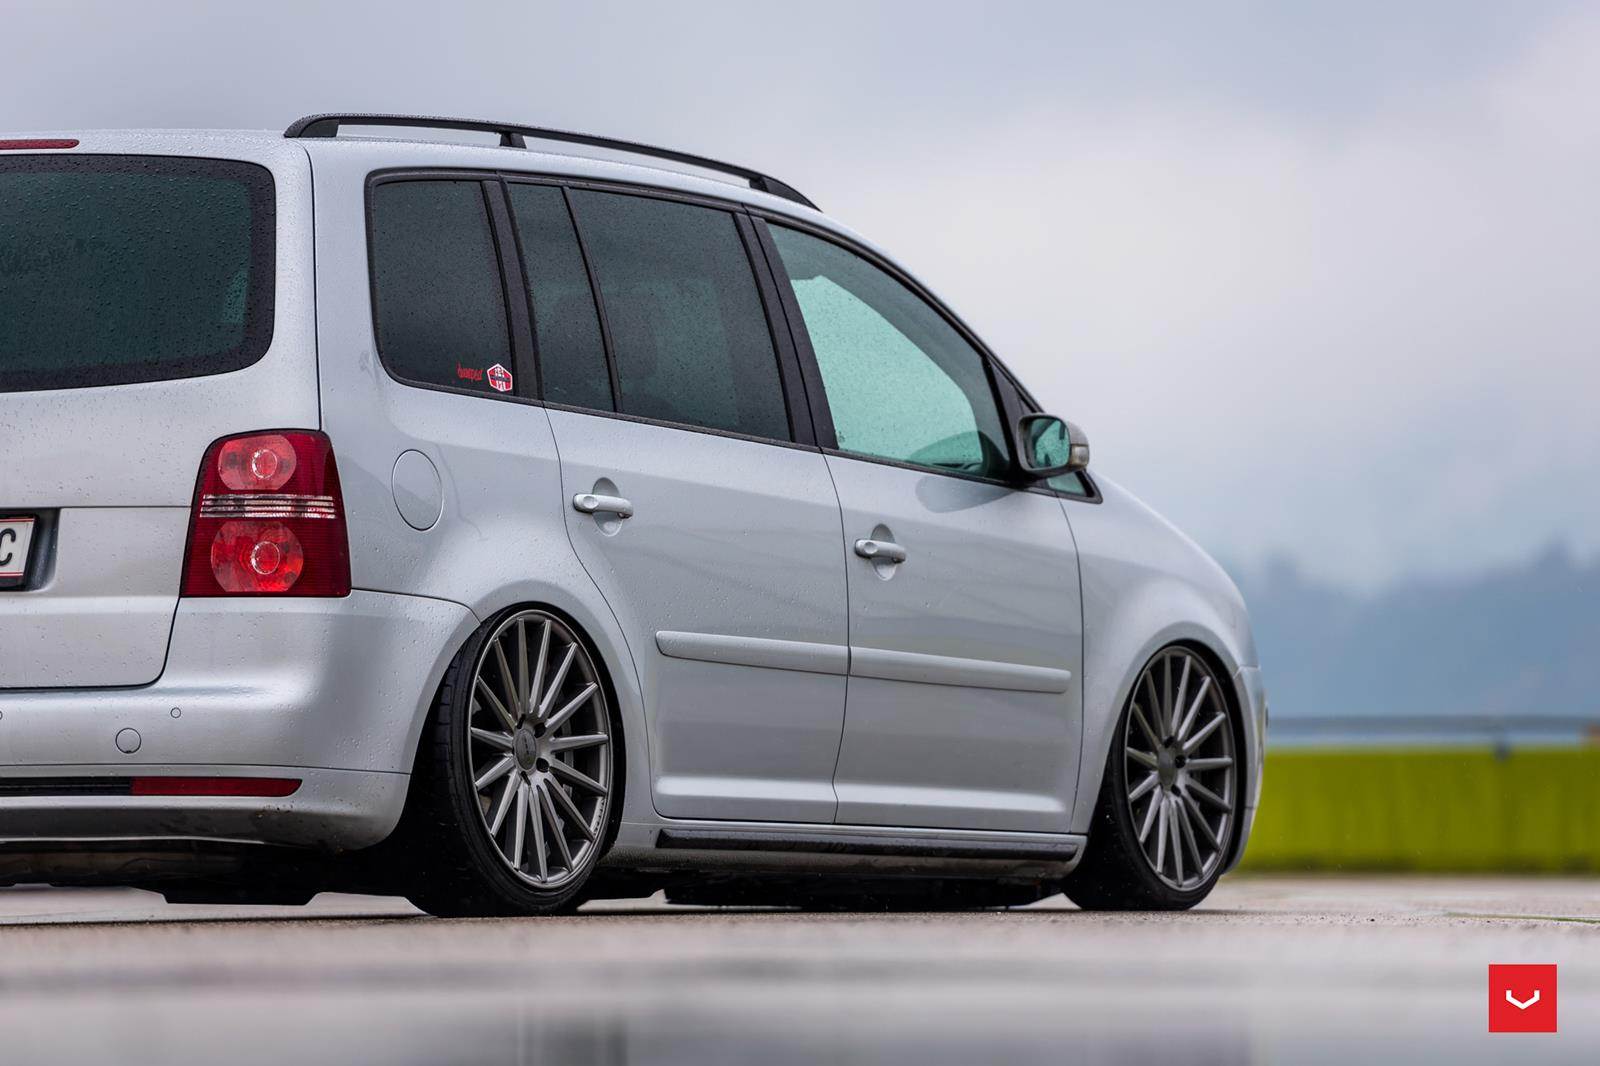 Vw Touran Tuning Pictures